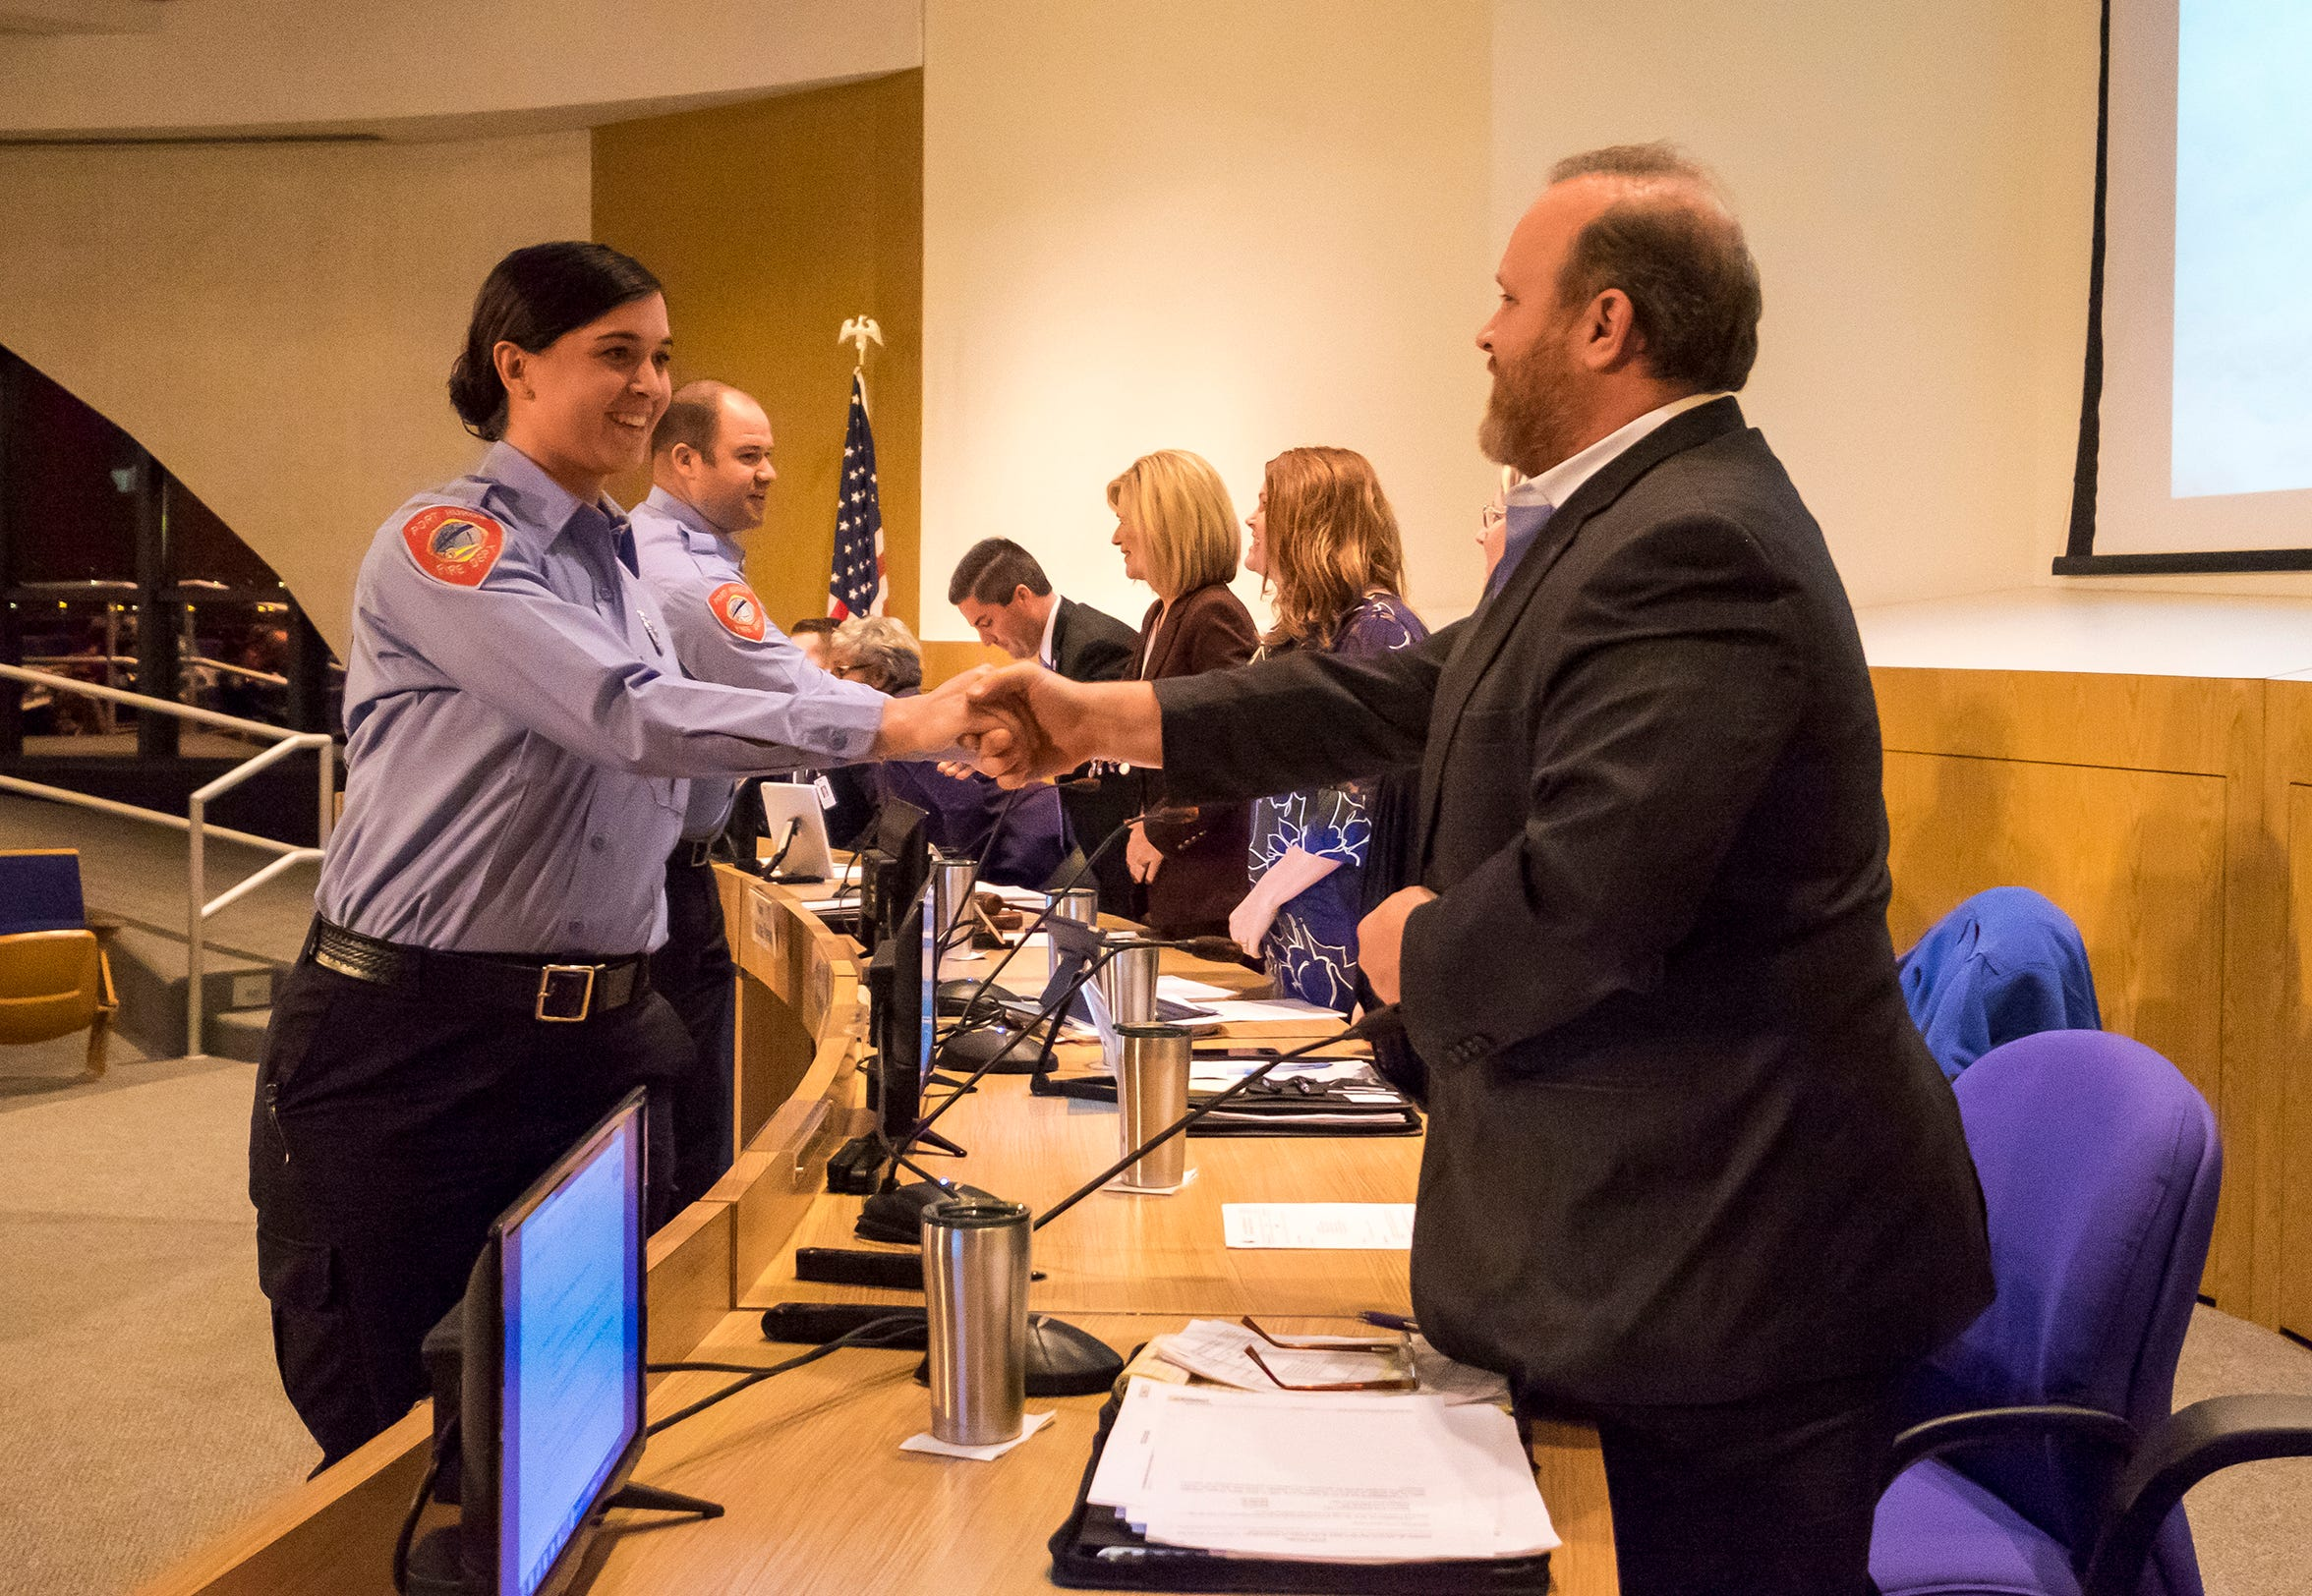 Port Huron Firefighter Jacqueline Martin, left, shakes hands with City Councilman Scott Worden after being introduced at a council meeting Monday, Jan. 14, 2019. She was one of several new fire department hires and is the second current female firefighter.